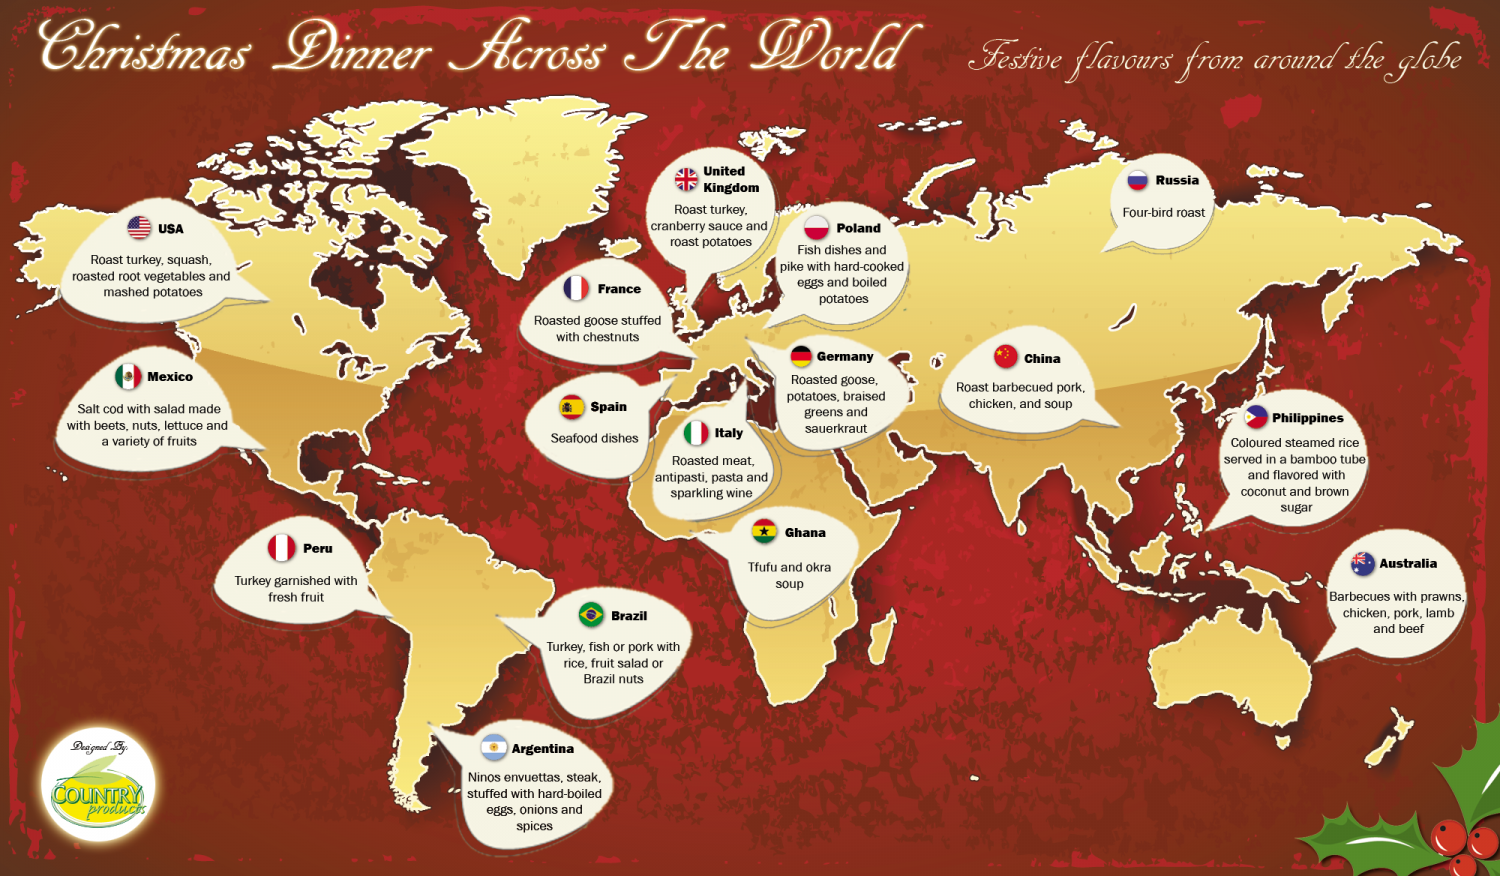 Christmas Dinner Across The World Infographic